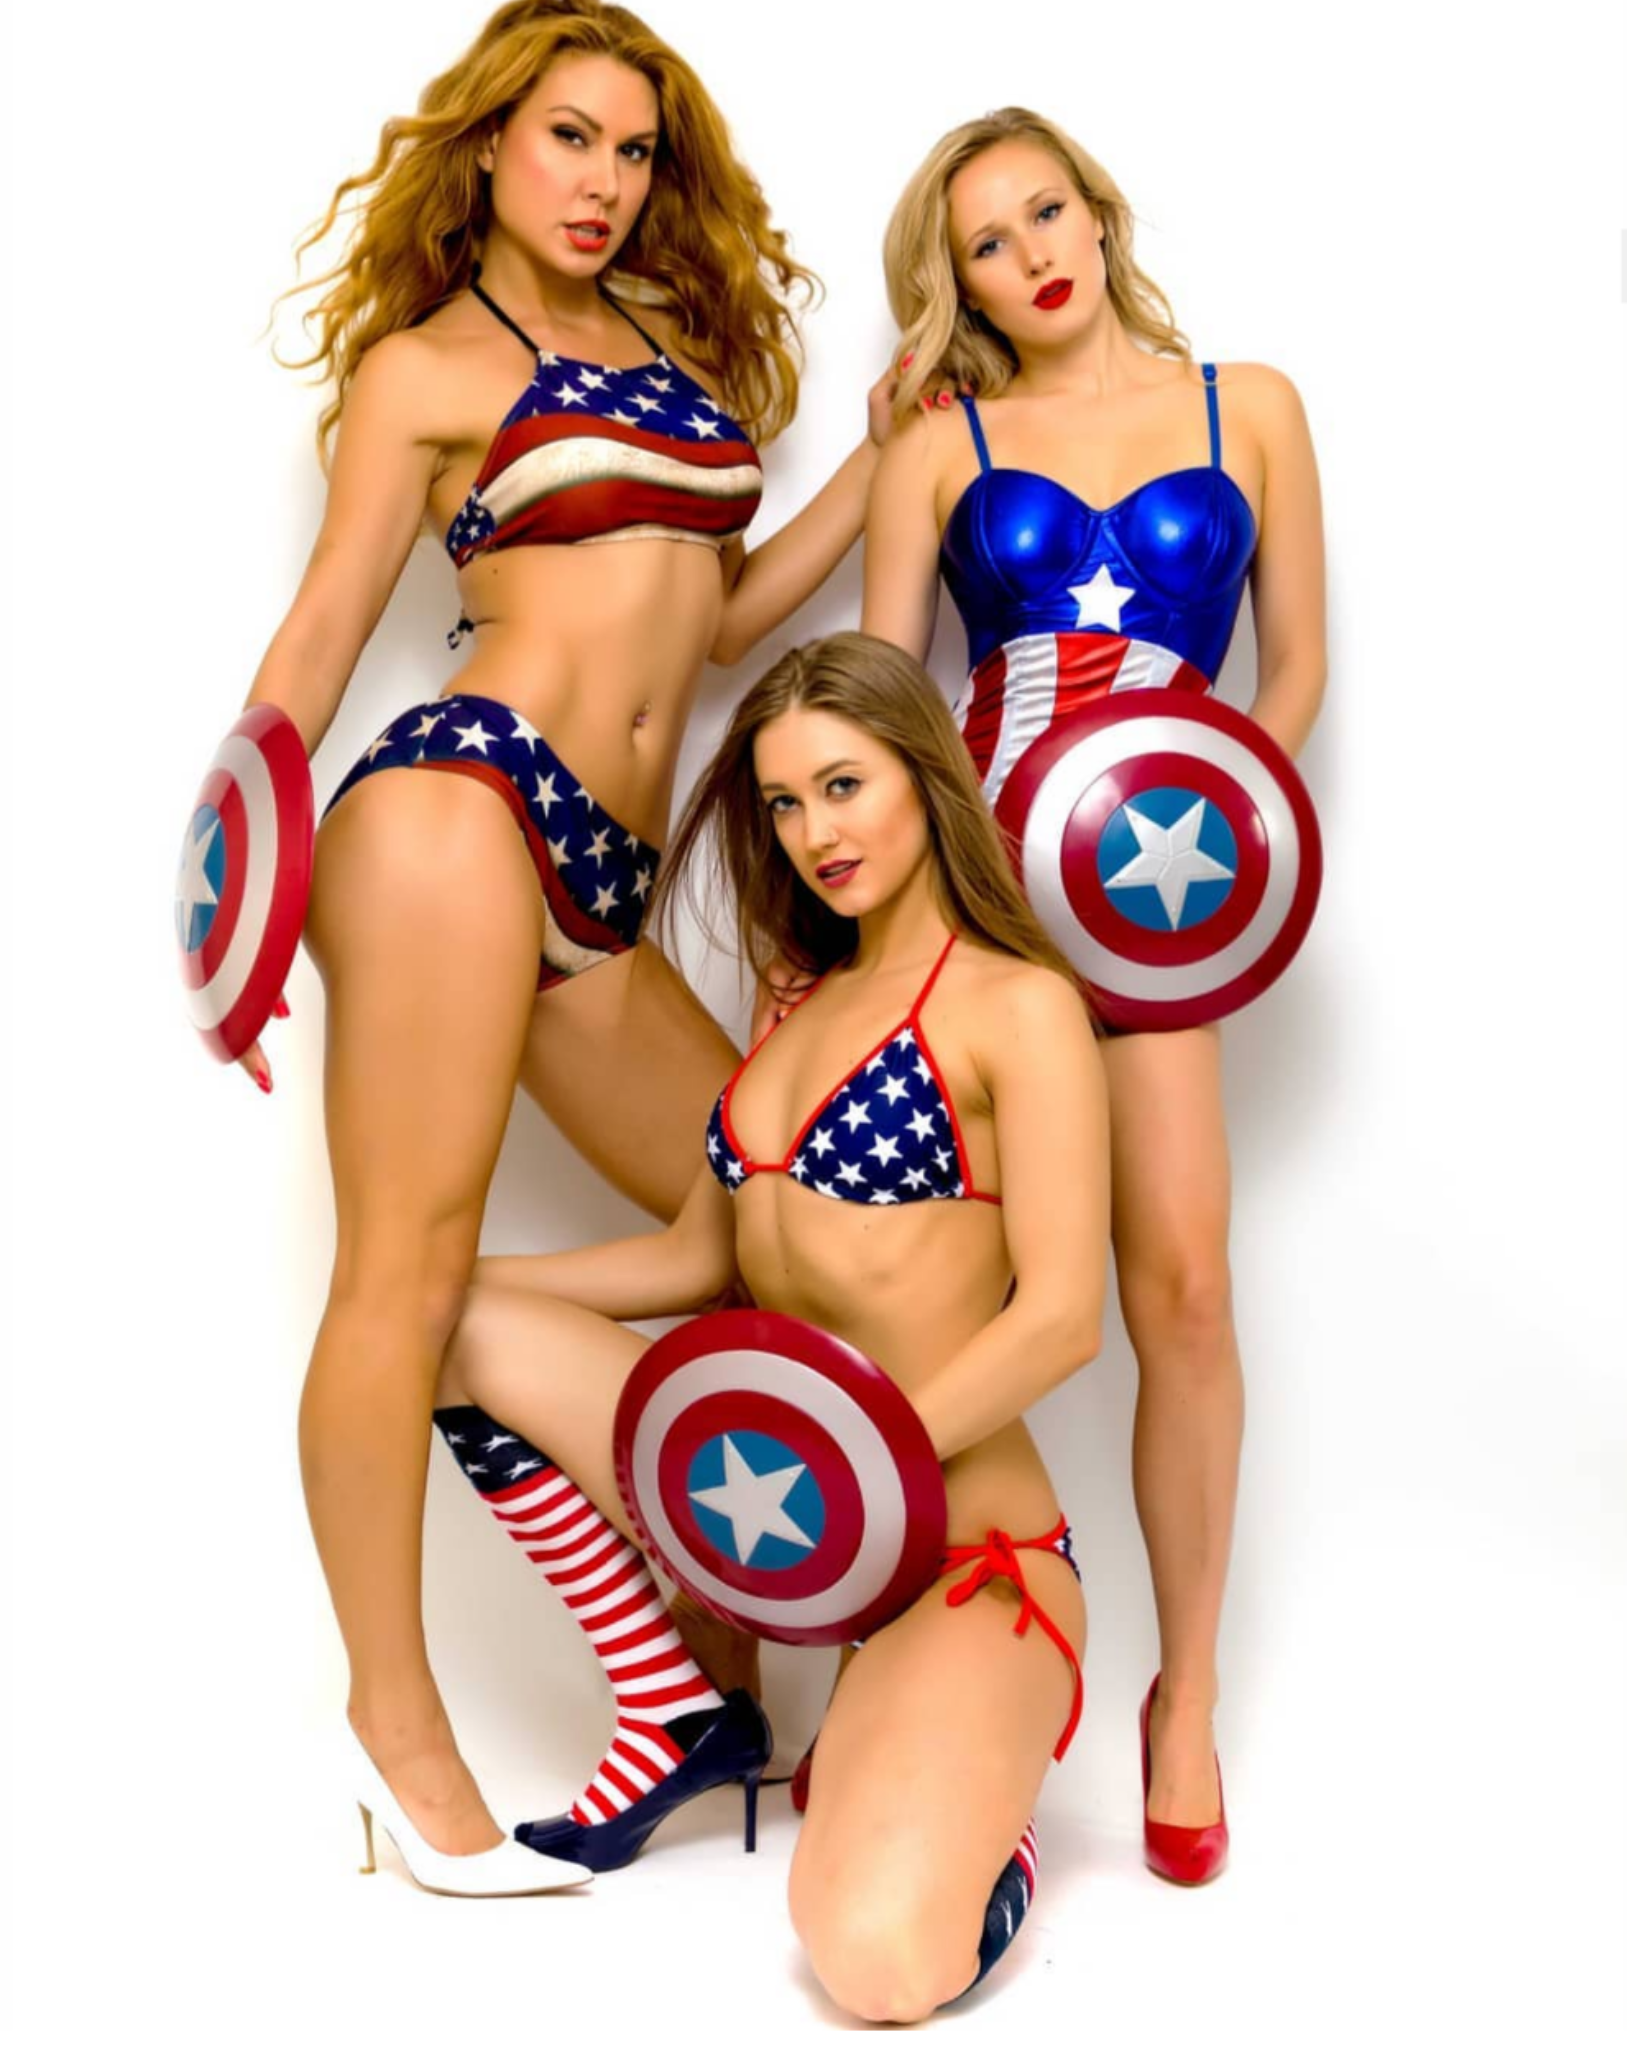 Happy 4th of July! (from some Canadian hotties)